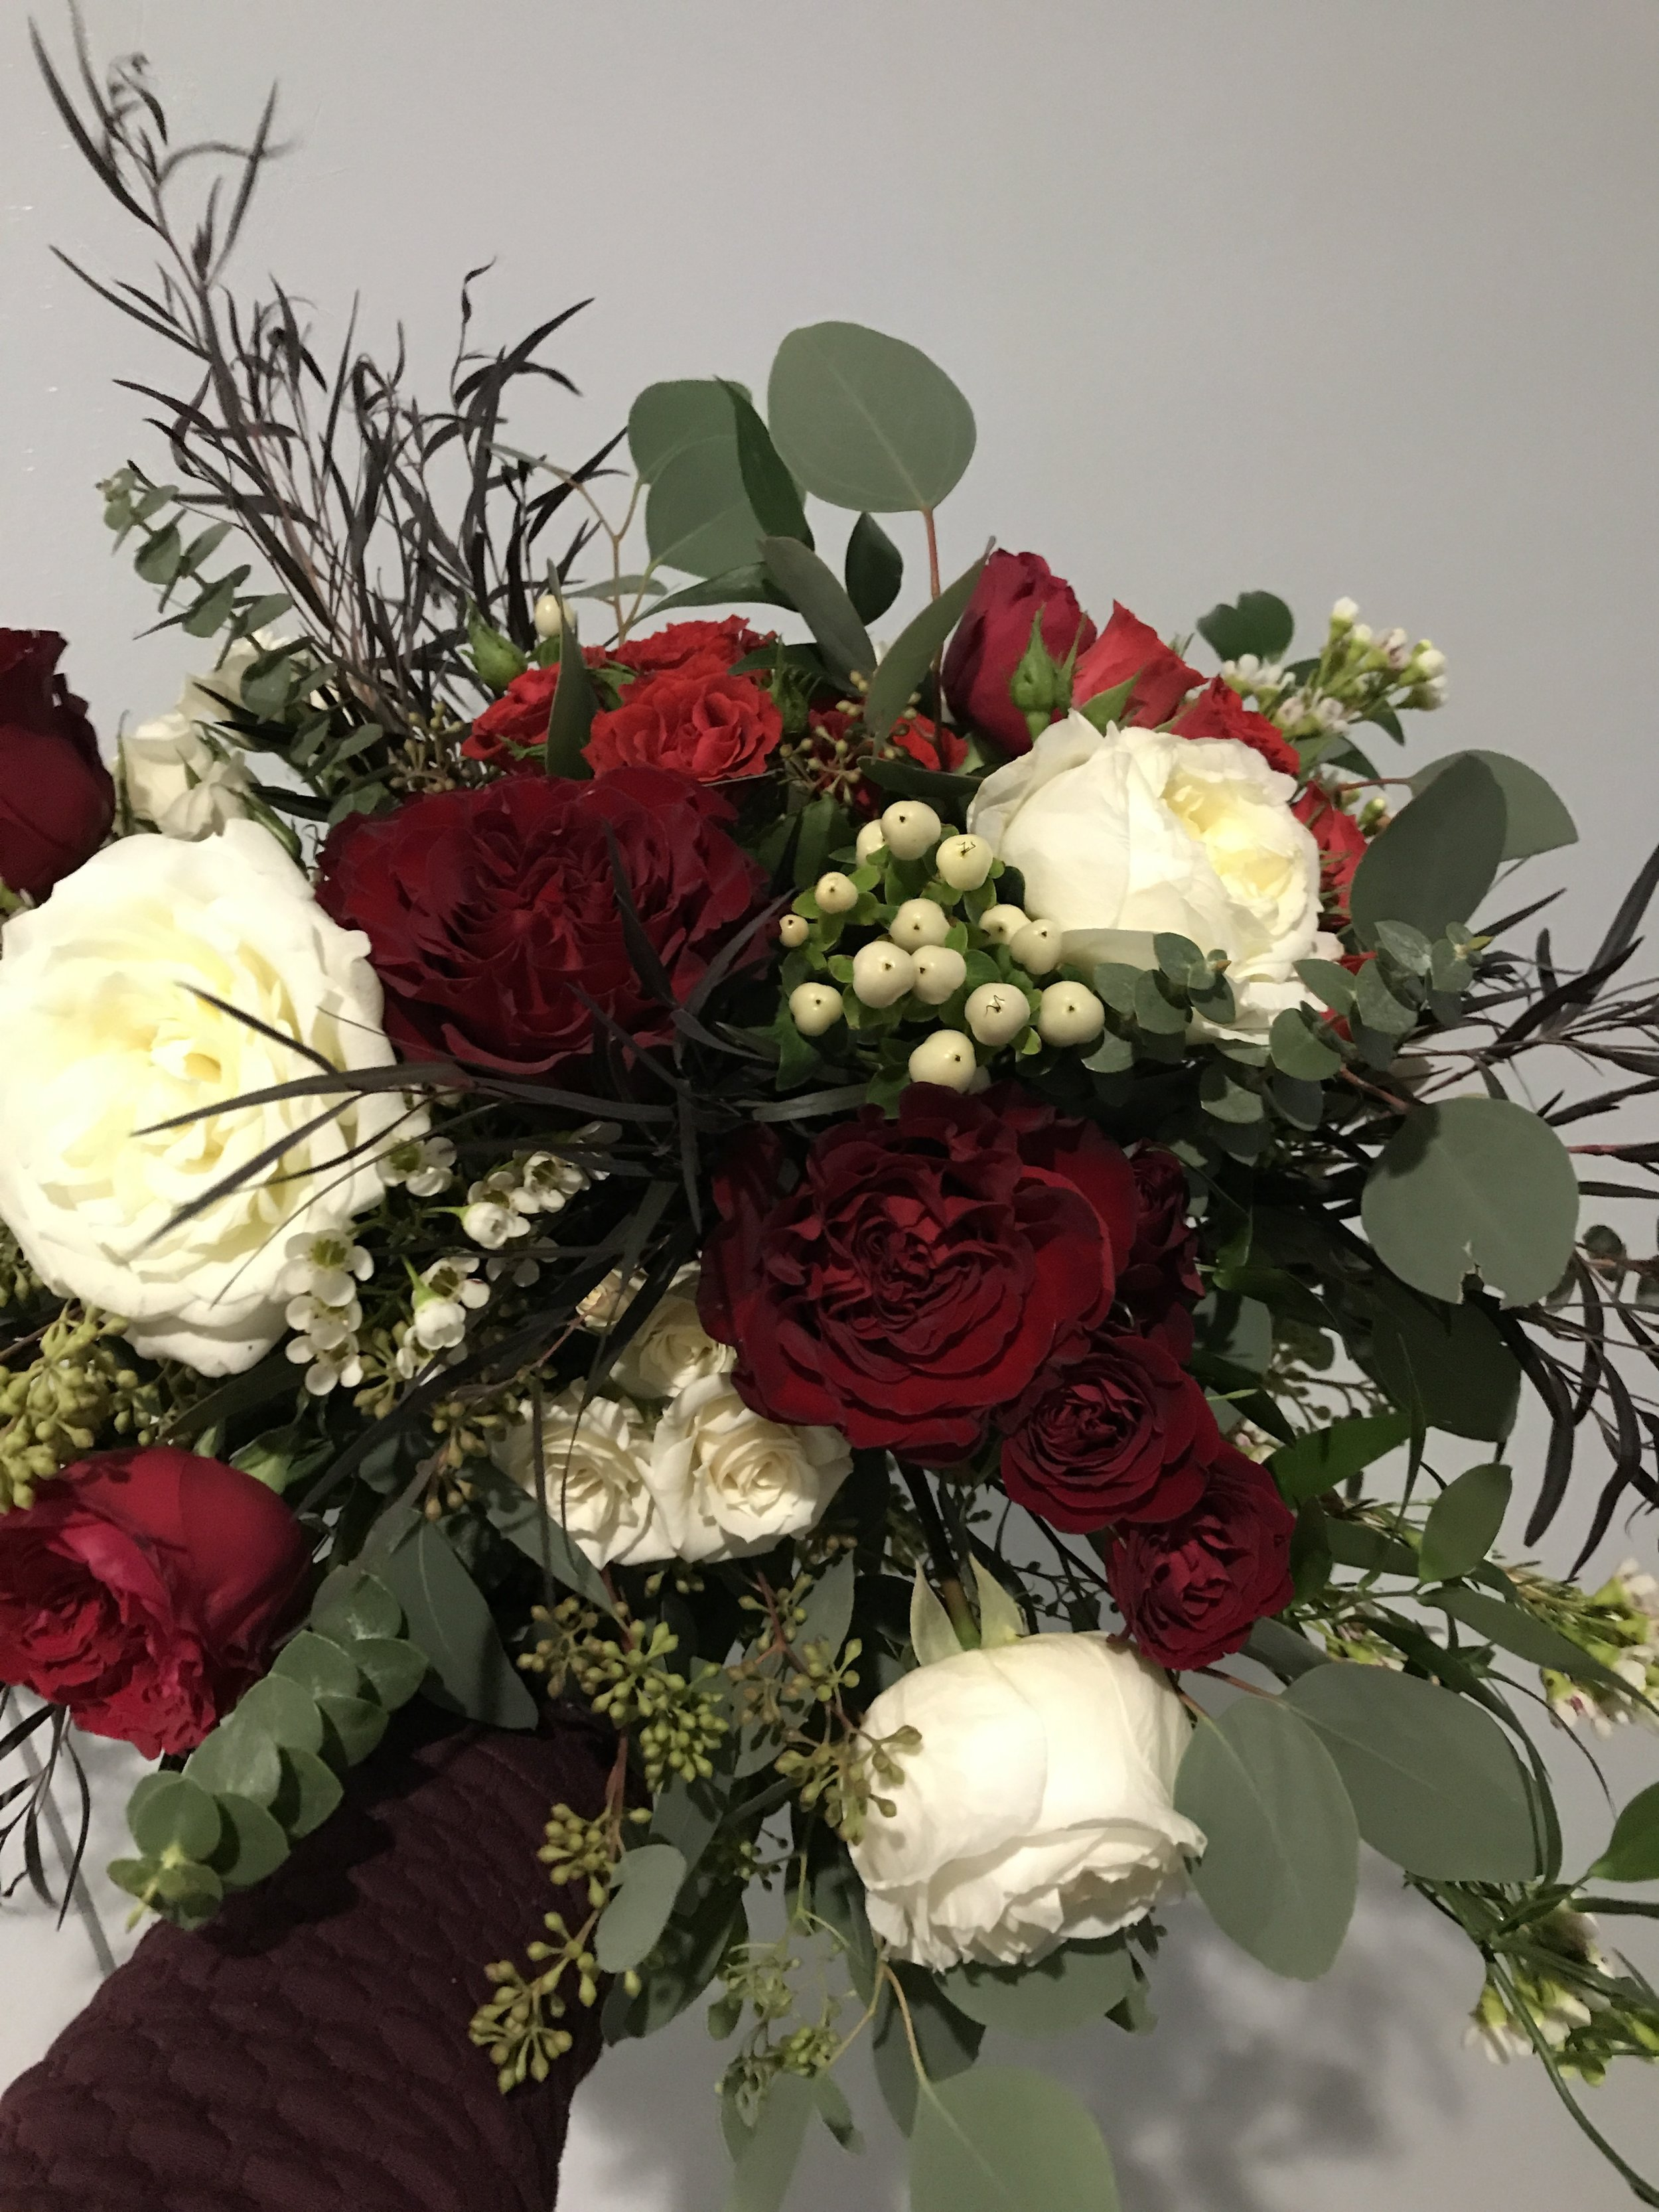 Late winter bouquet in burgundy and cream with berries